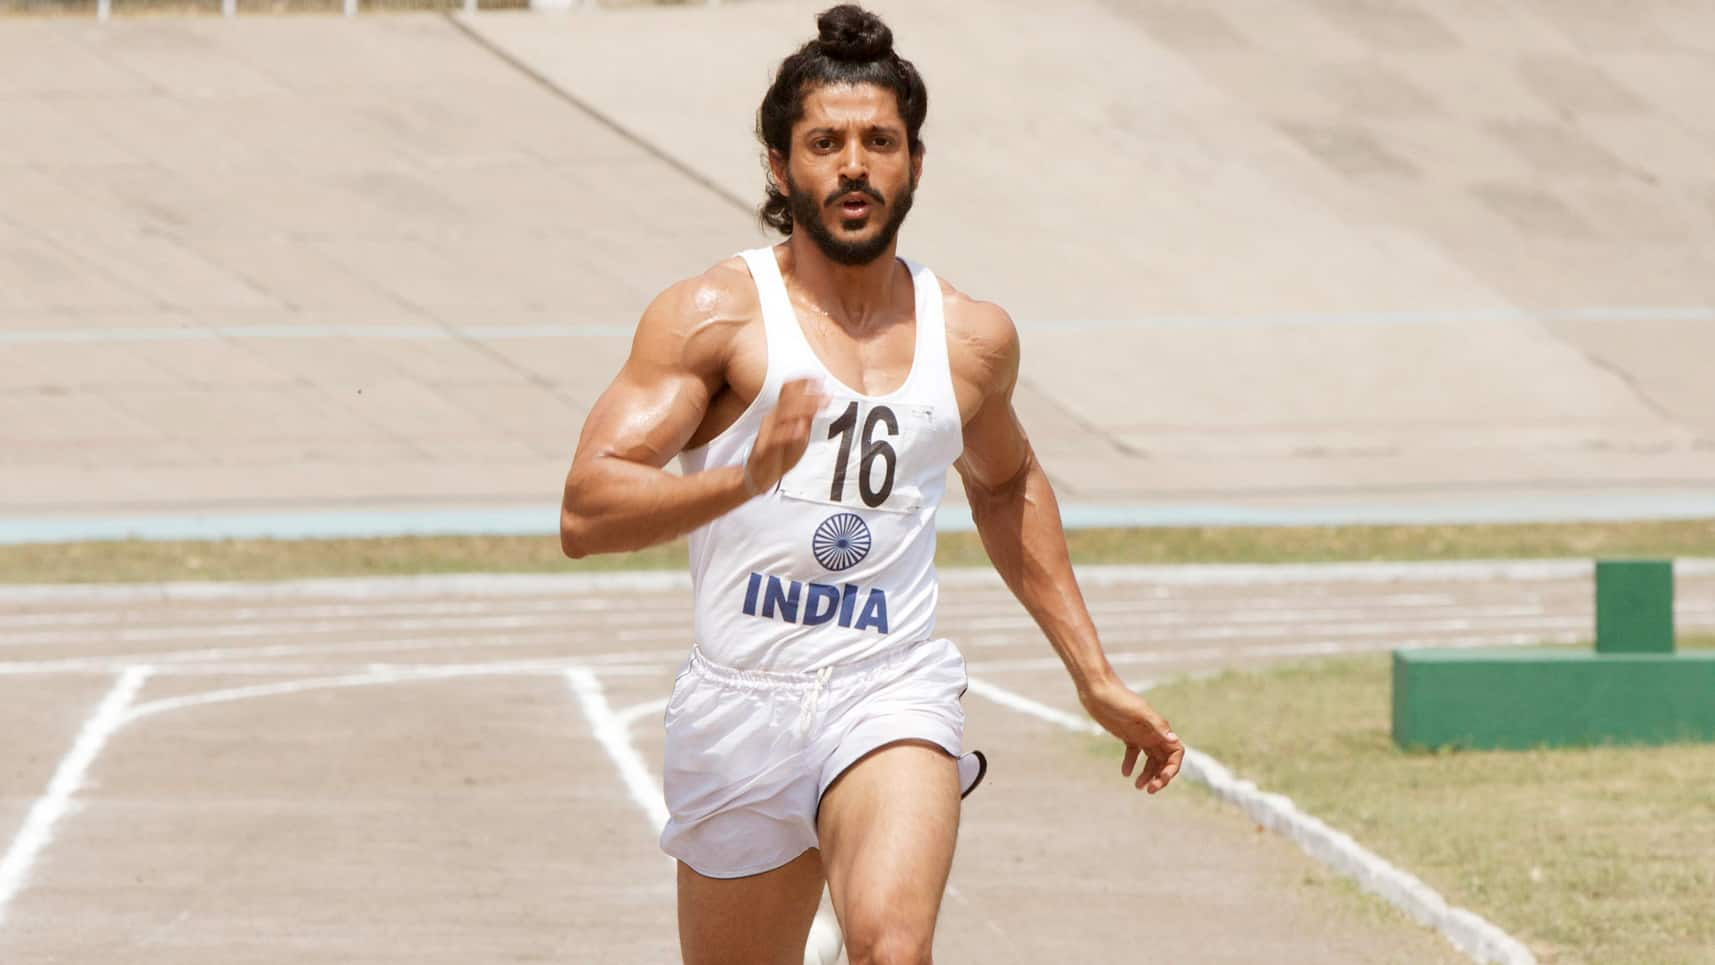 Sonam Kapoor Celebrates 7 Years Of Bhaag Milkha Bhaag; Shares Stills And BTS Pics With Farhan Akhtar